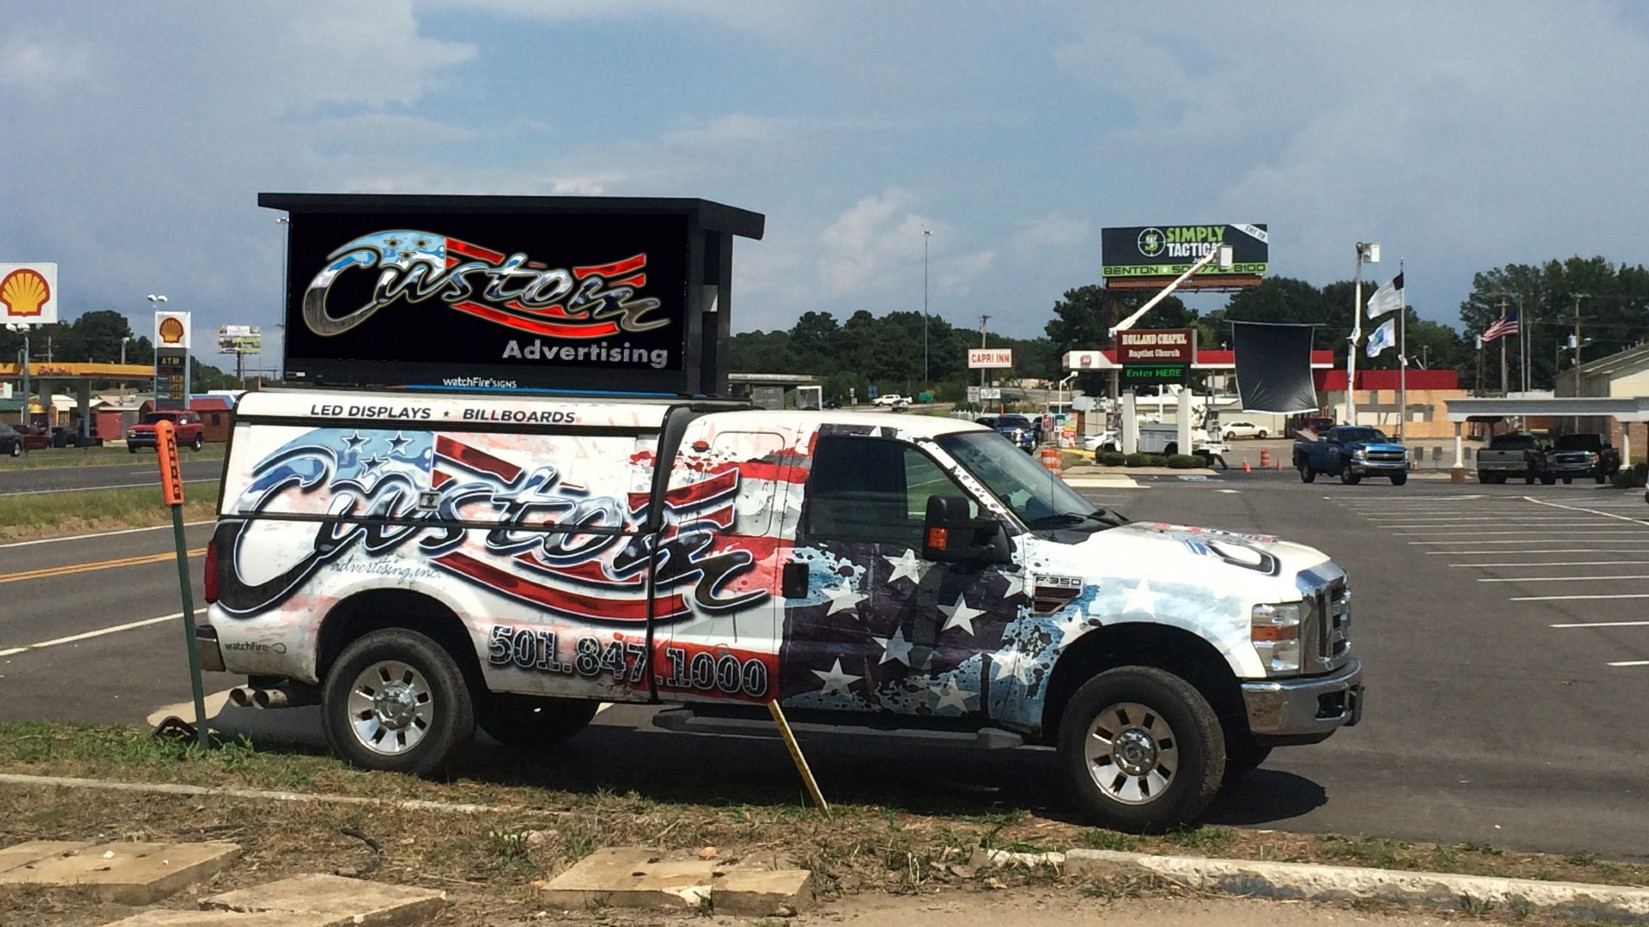 Call 501-847-1000 to reserve YOUR Custom Ad Space.